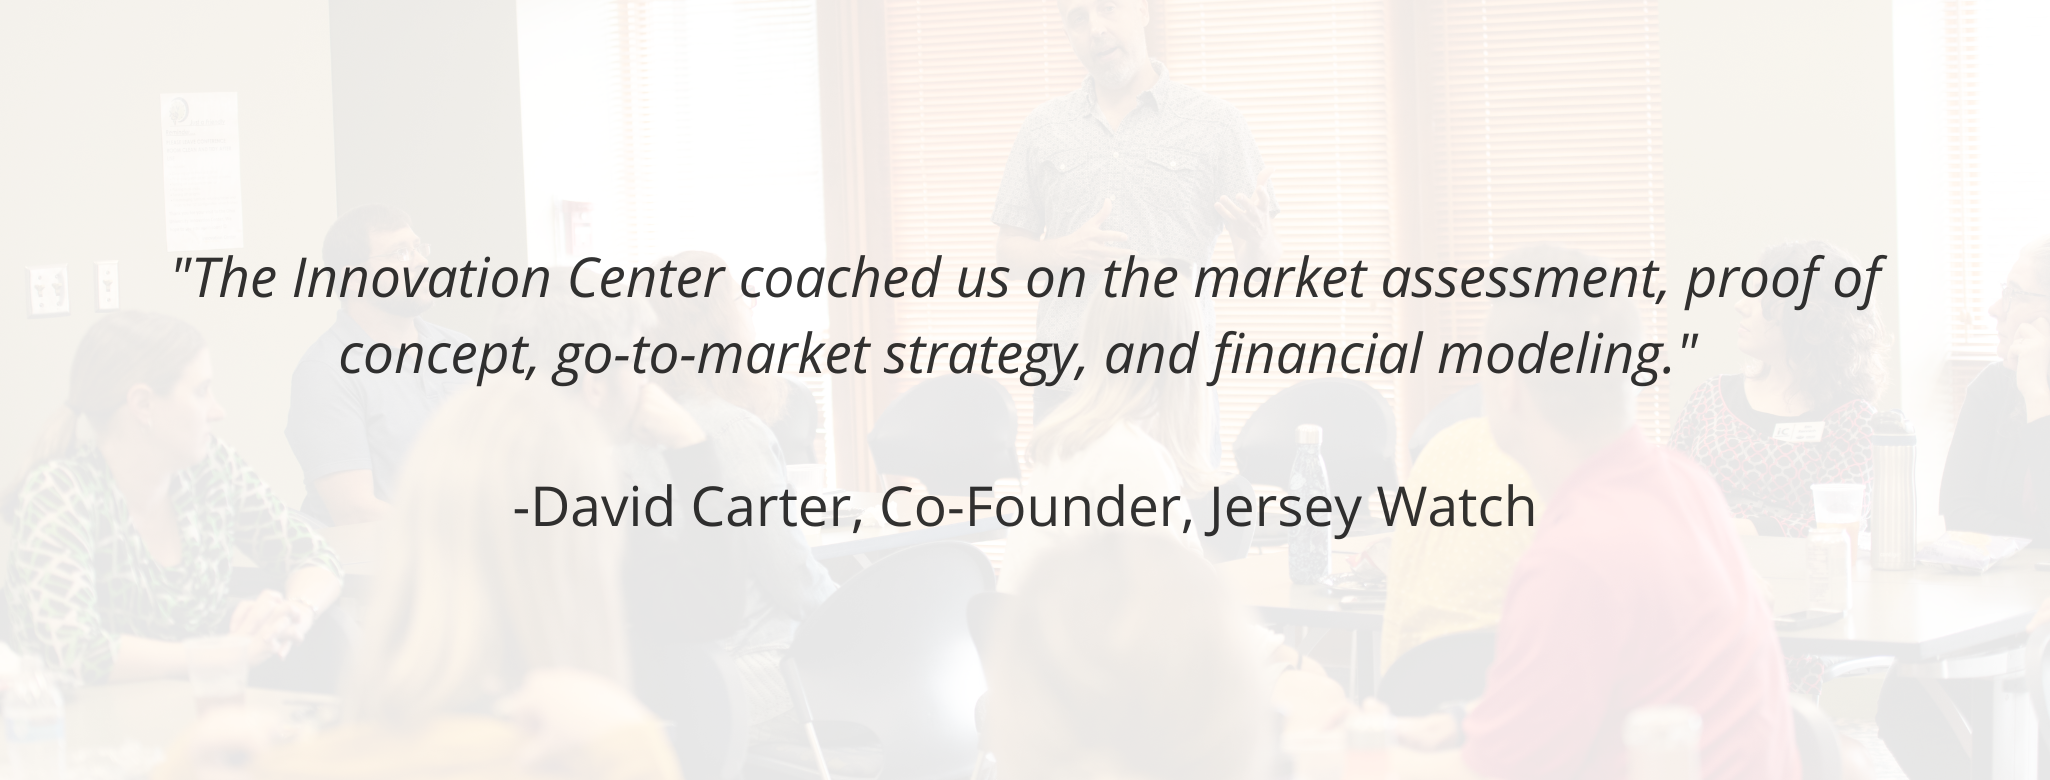 """The Innovation Center coached us on the market assessment, proof of concept, go-to-market strategy, and financial modeling.""   -David Carter, Co-Founder, Jersey Watch"